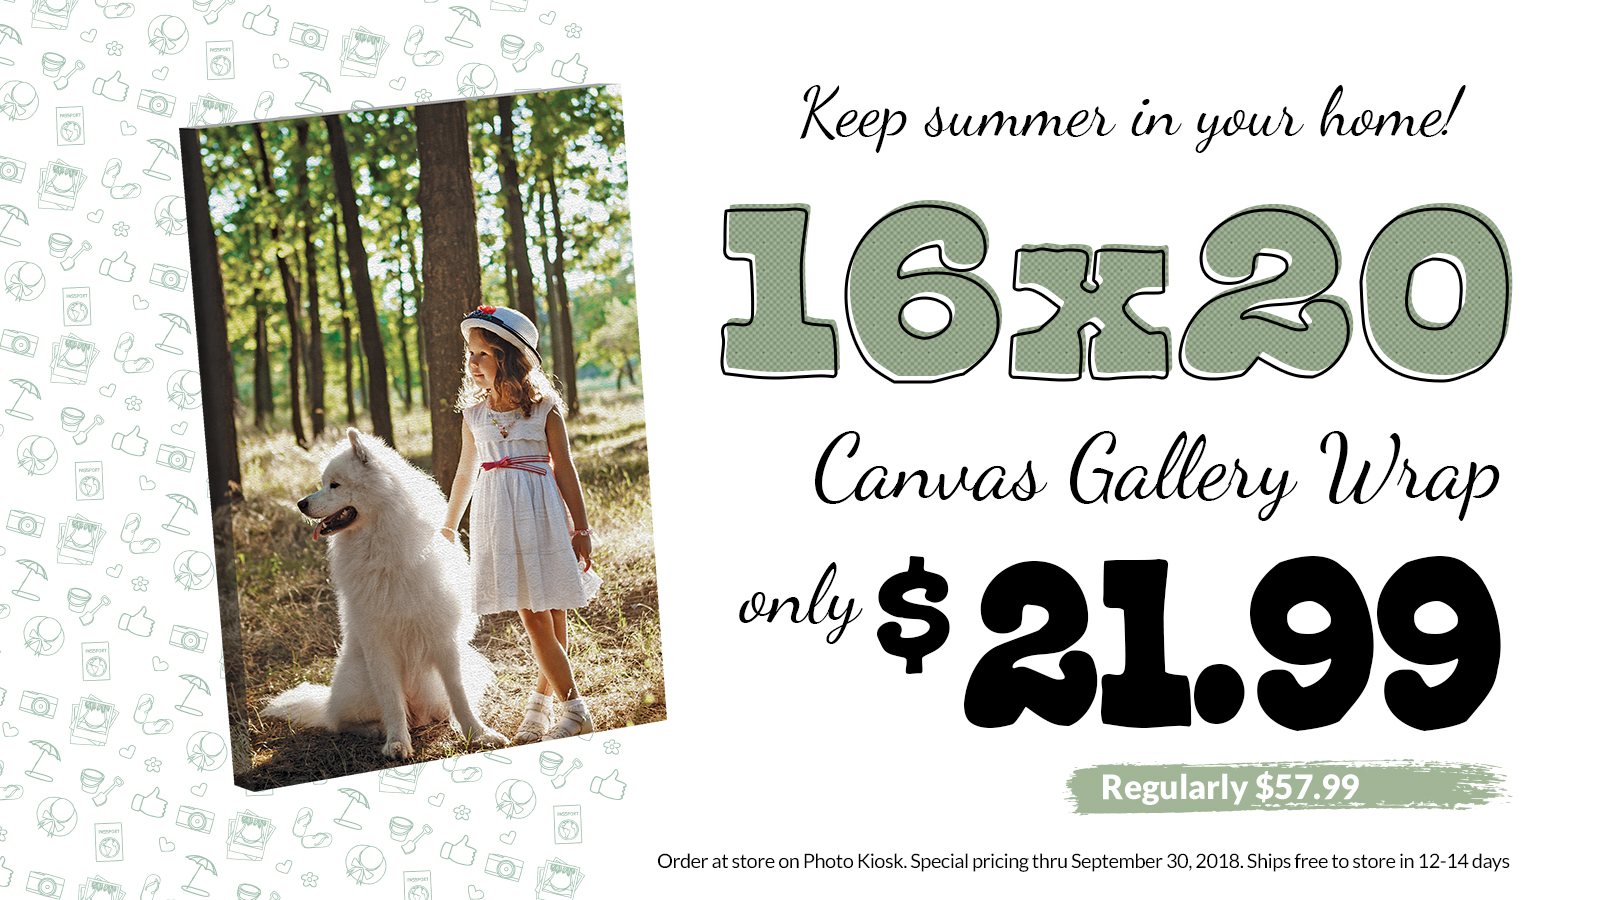 photo deals advertising image